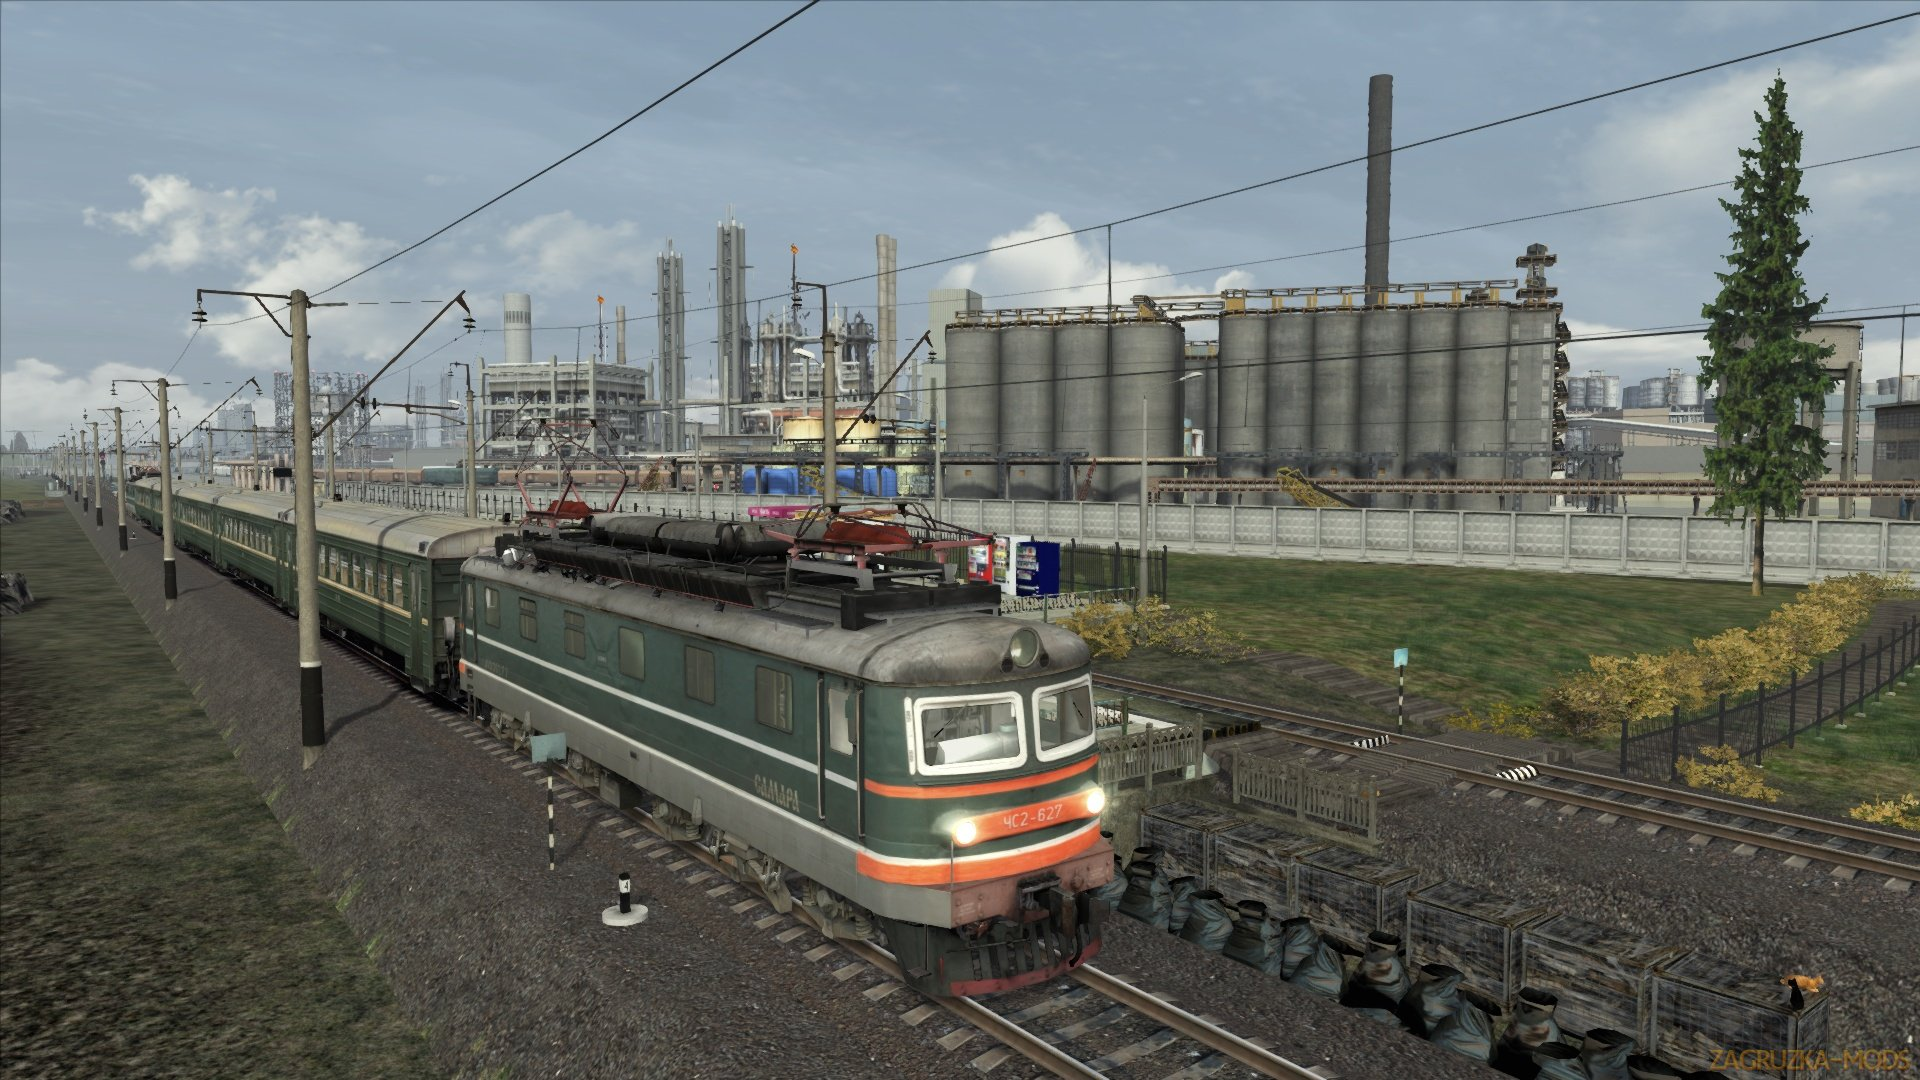 Route Novomoskovsk - Necklace (Новомосковск - Ожерелье) v3.04 for TS 2018